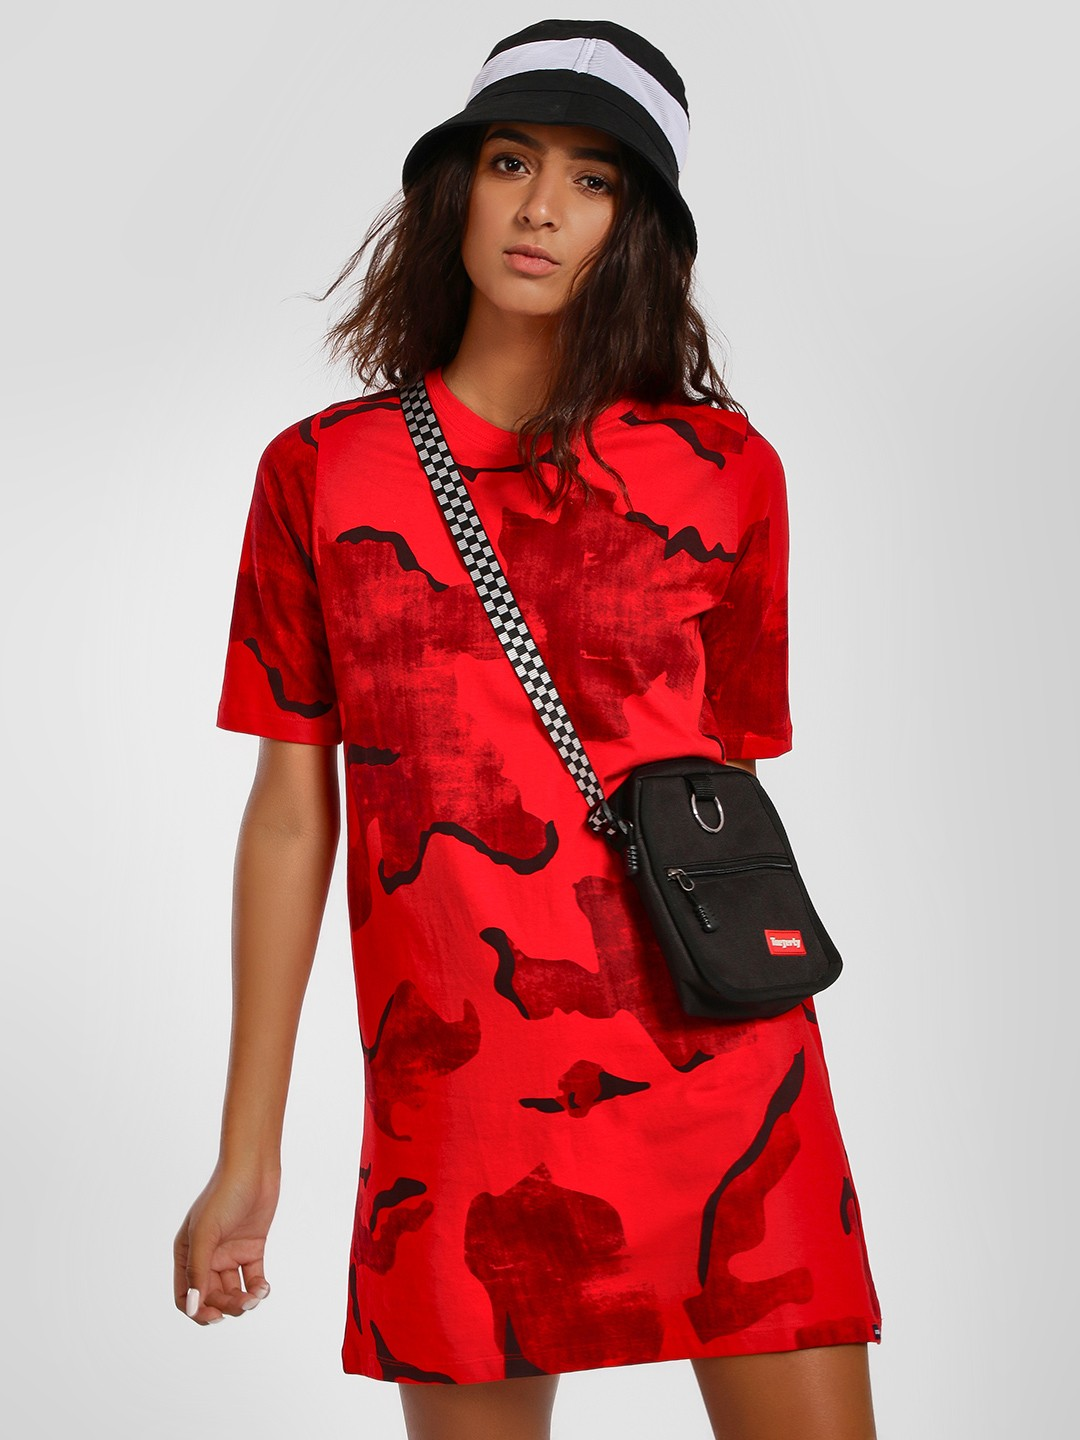 Disrupt Red Camo Print T-Shirt Dress 1